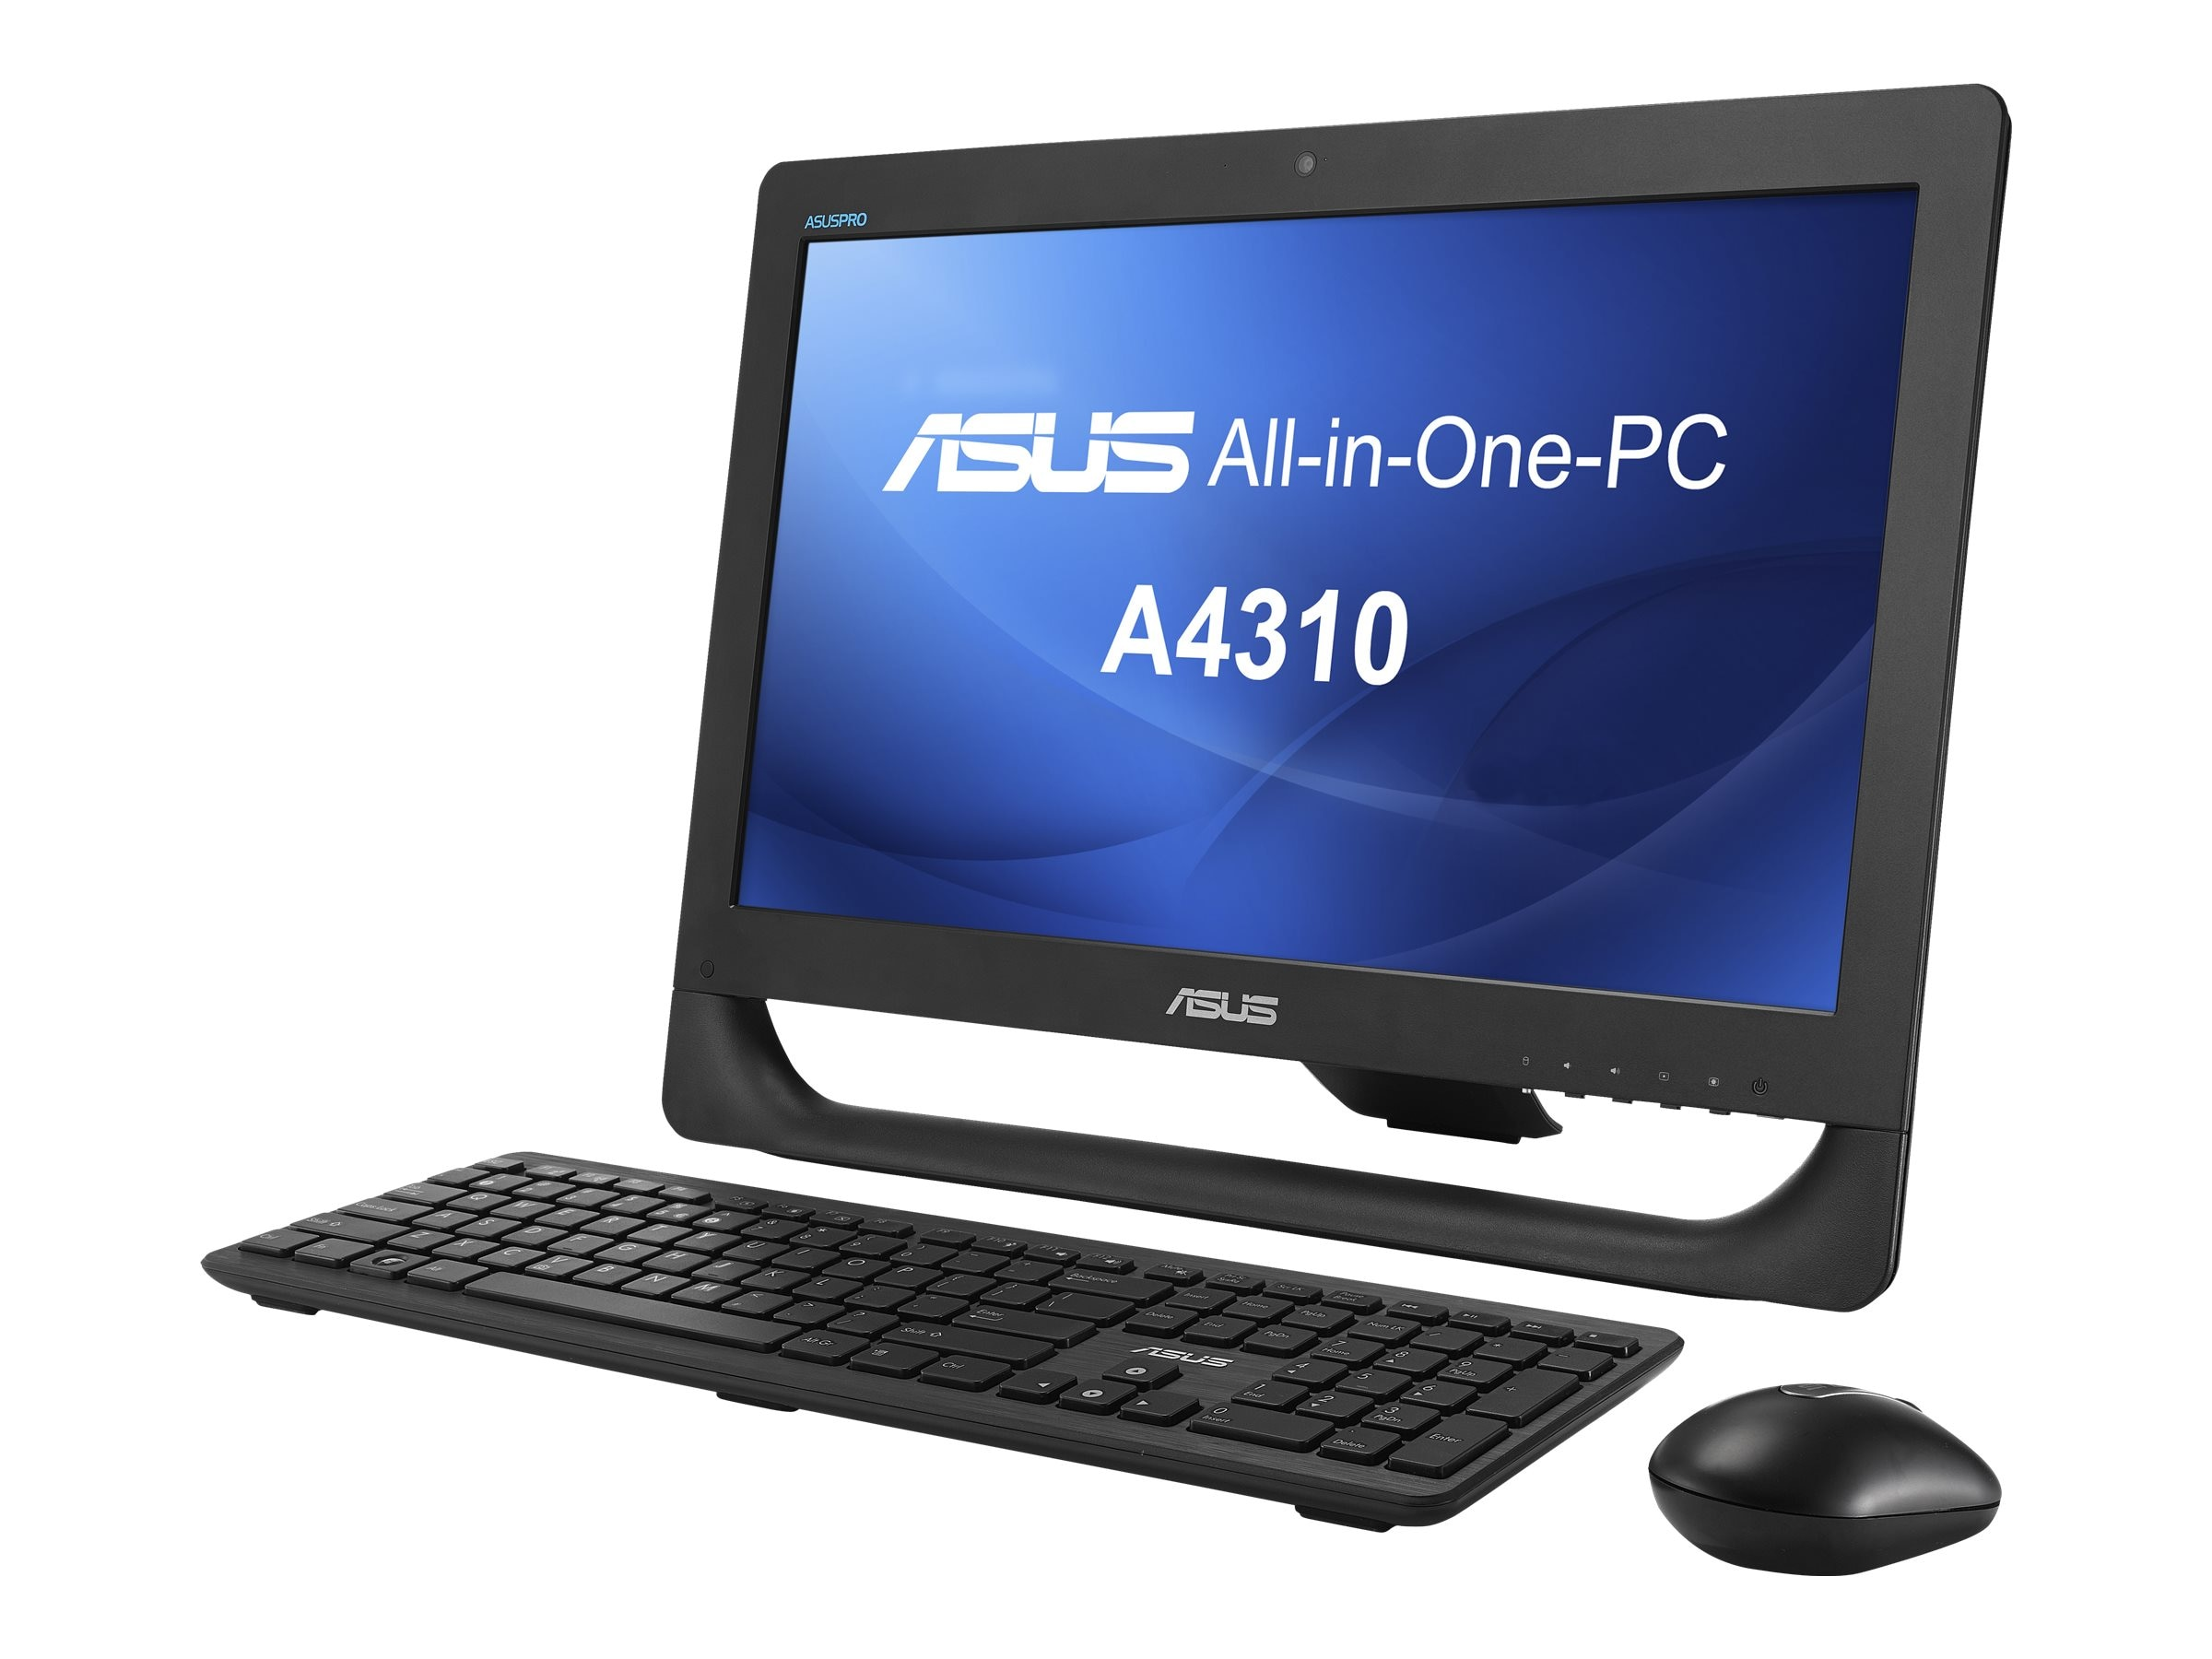 Asus A4310-B1 AIO Core i3-4150T 3.0GHz 4GB 500GB IntelHD DVD-RW n WC 20 HD W7P64, A4310-B1, 17950125, Desktops - All-in-One